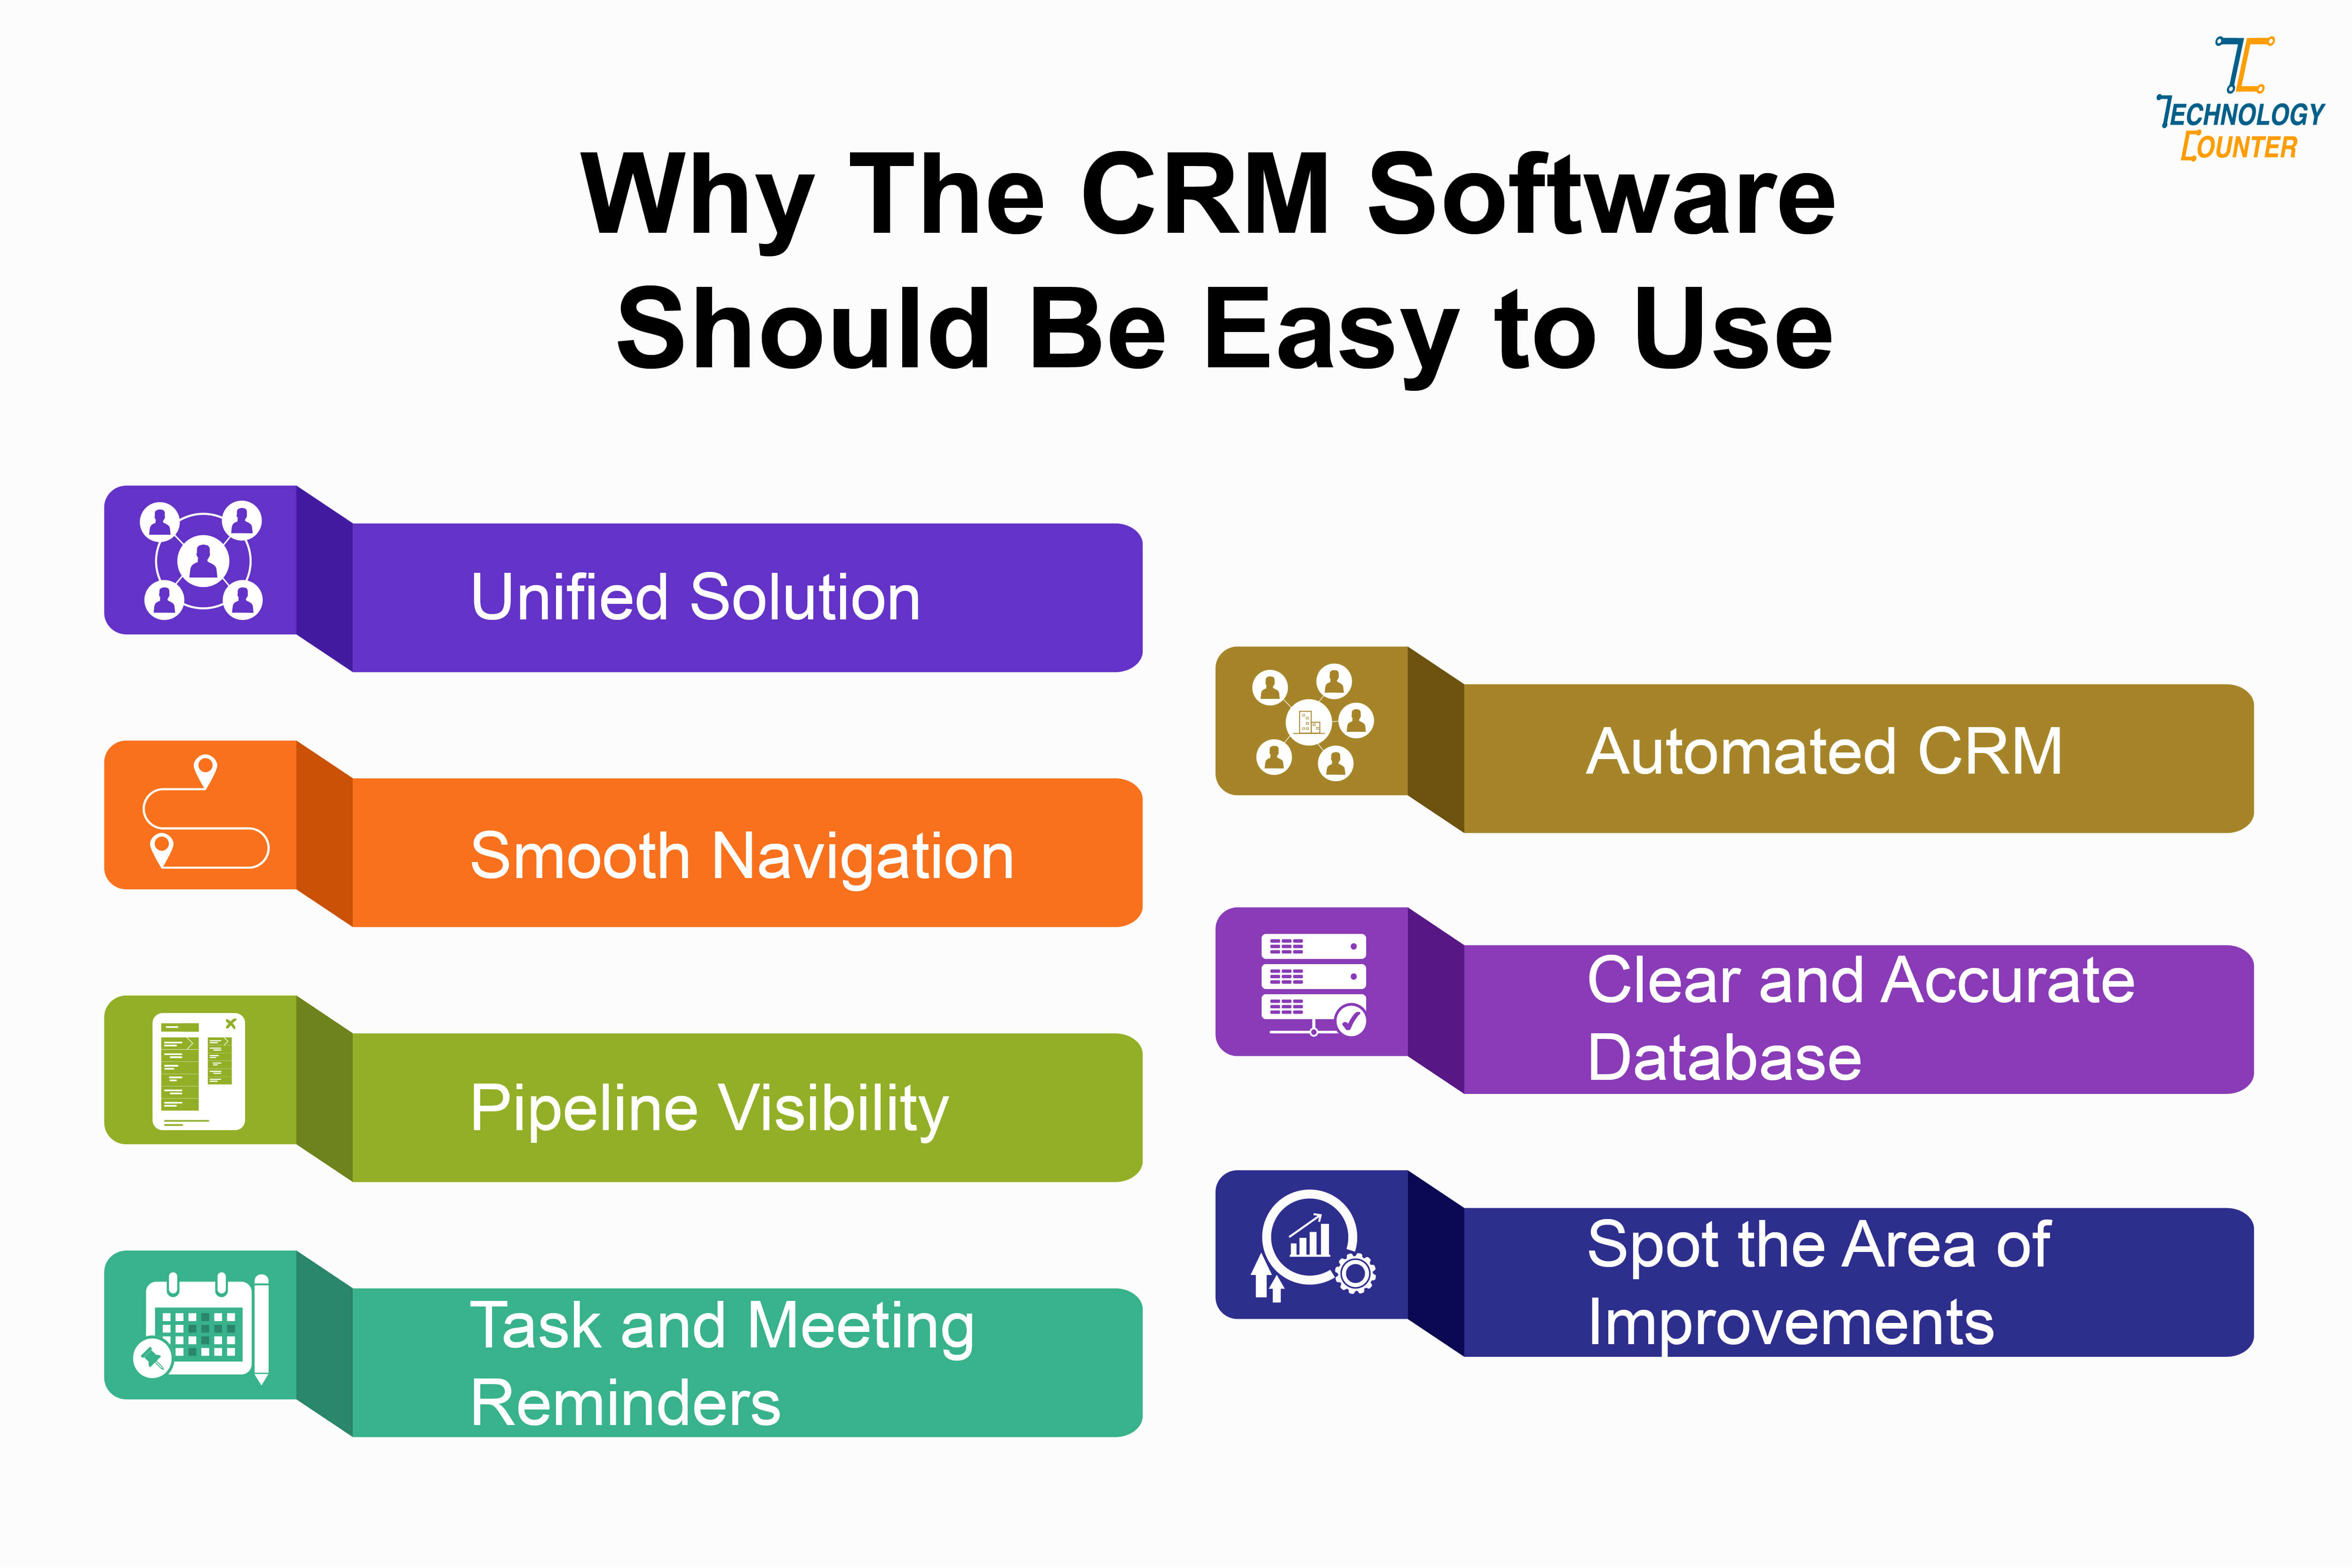 Why the CRM software should be easy to use